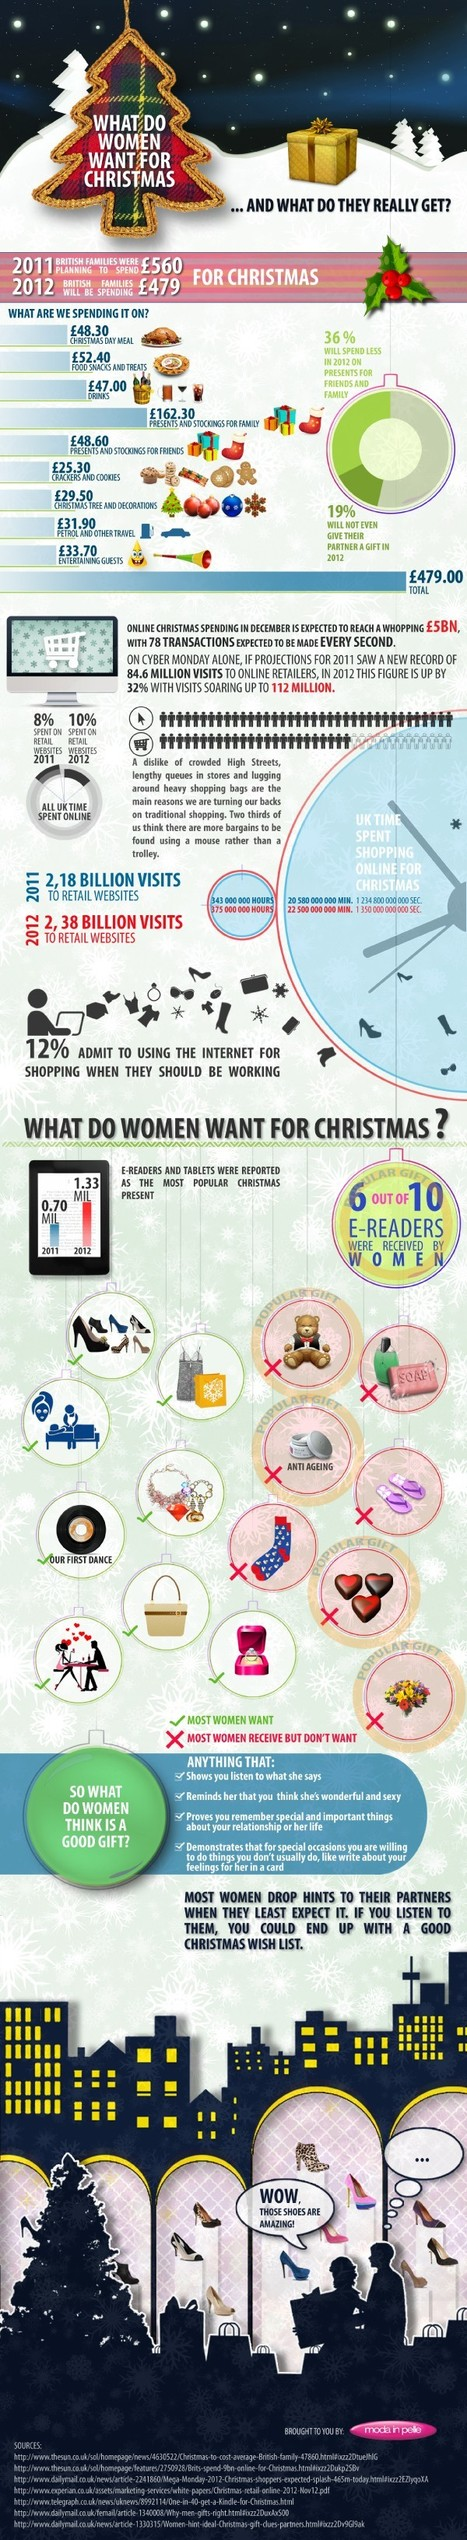 What Women want on Christmas from Partners and loved ones | All Infographics | All Infographics | Scoop.it